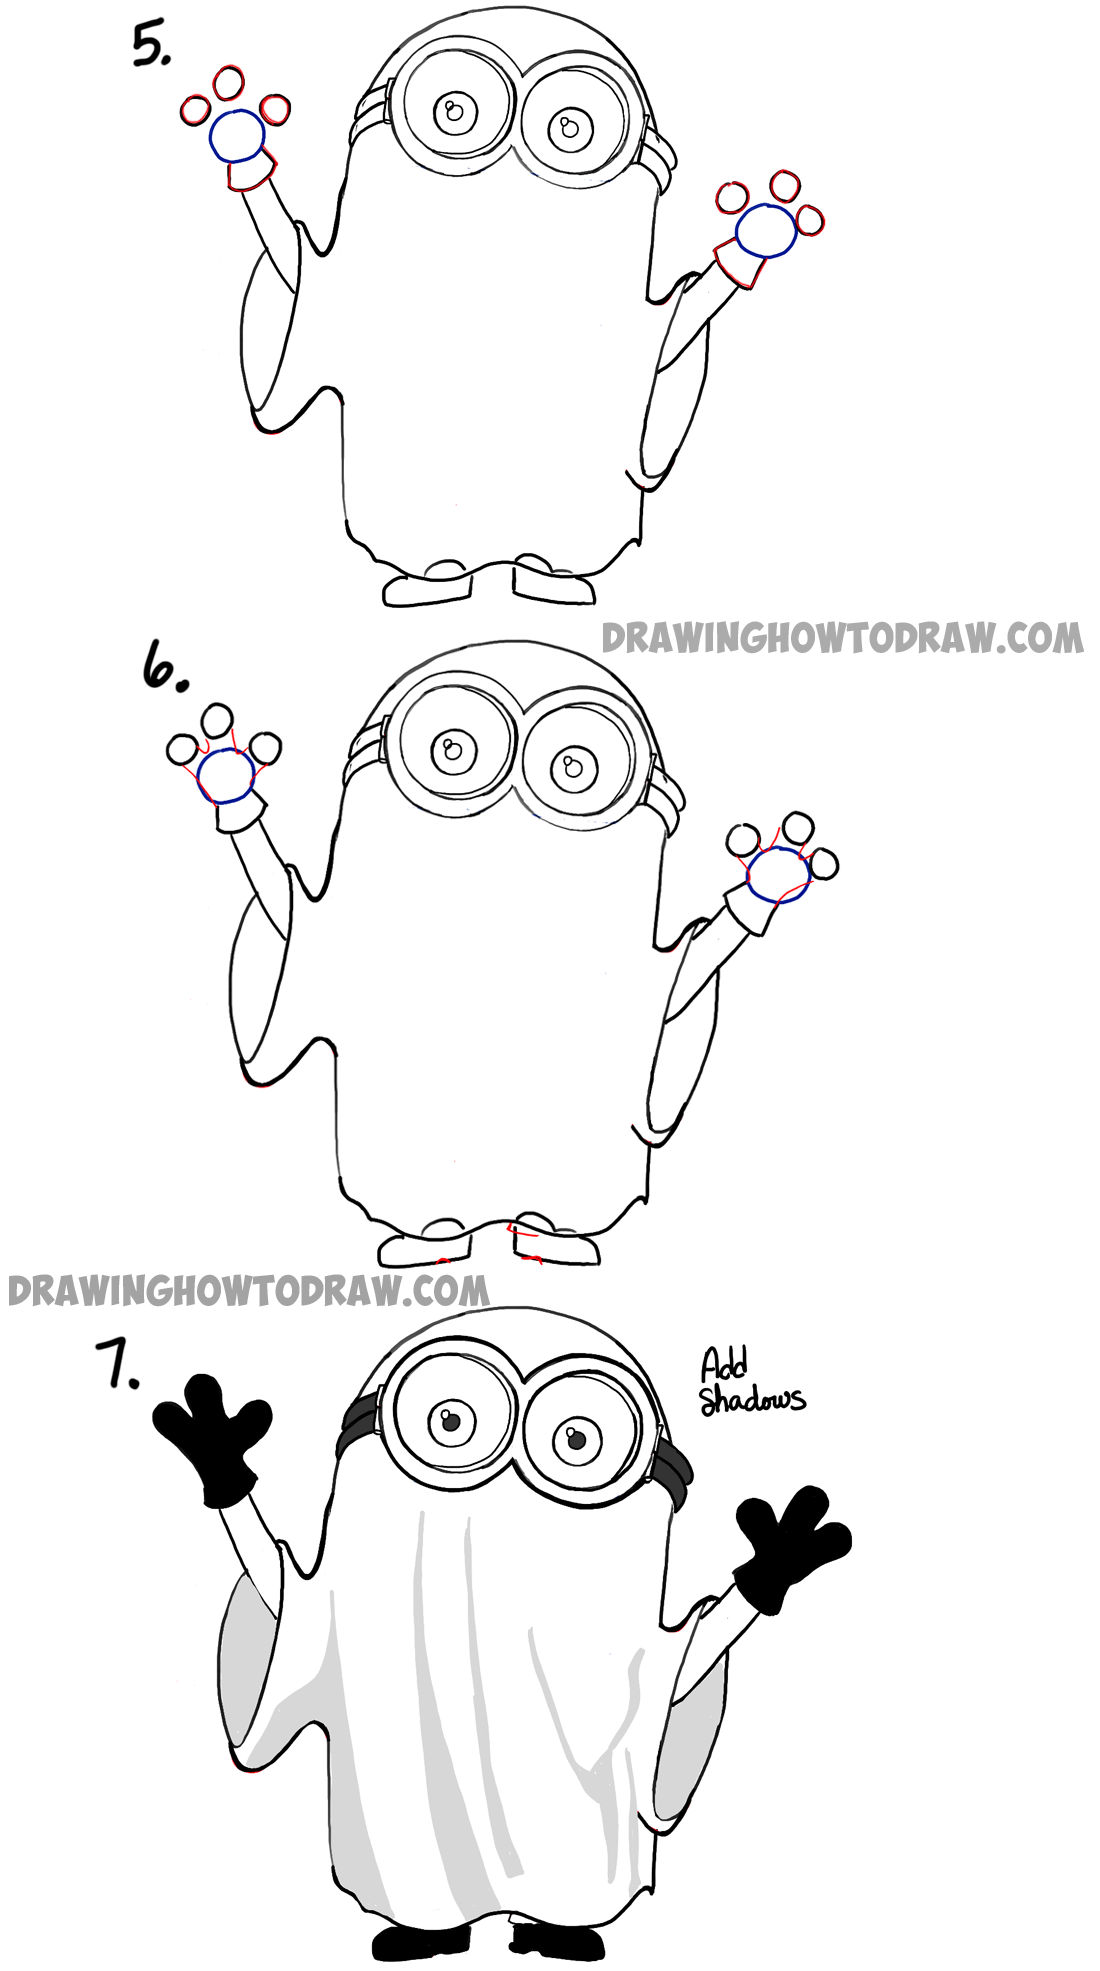 How to draw ghost minion for halloween step by step instructions